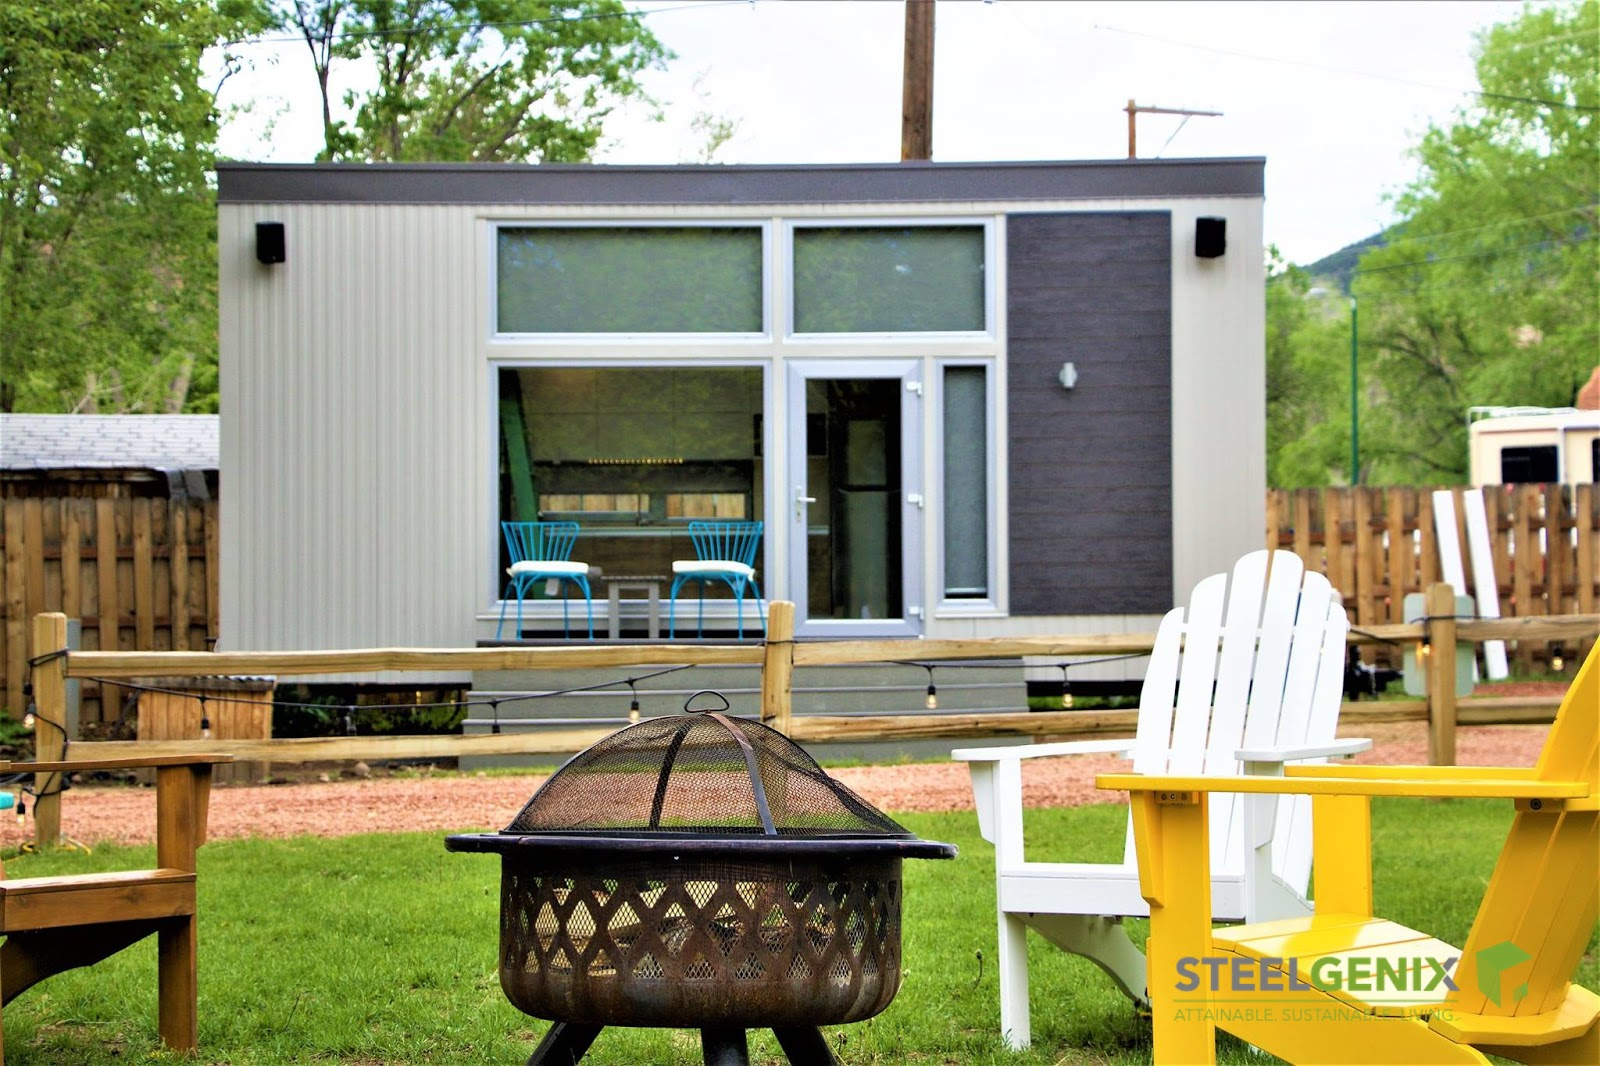 Tiny House Town The Steelhaus From Steelgenix